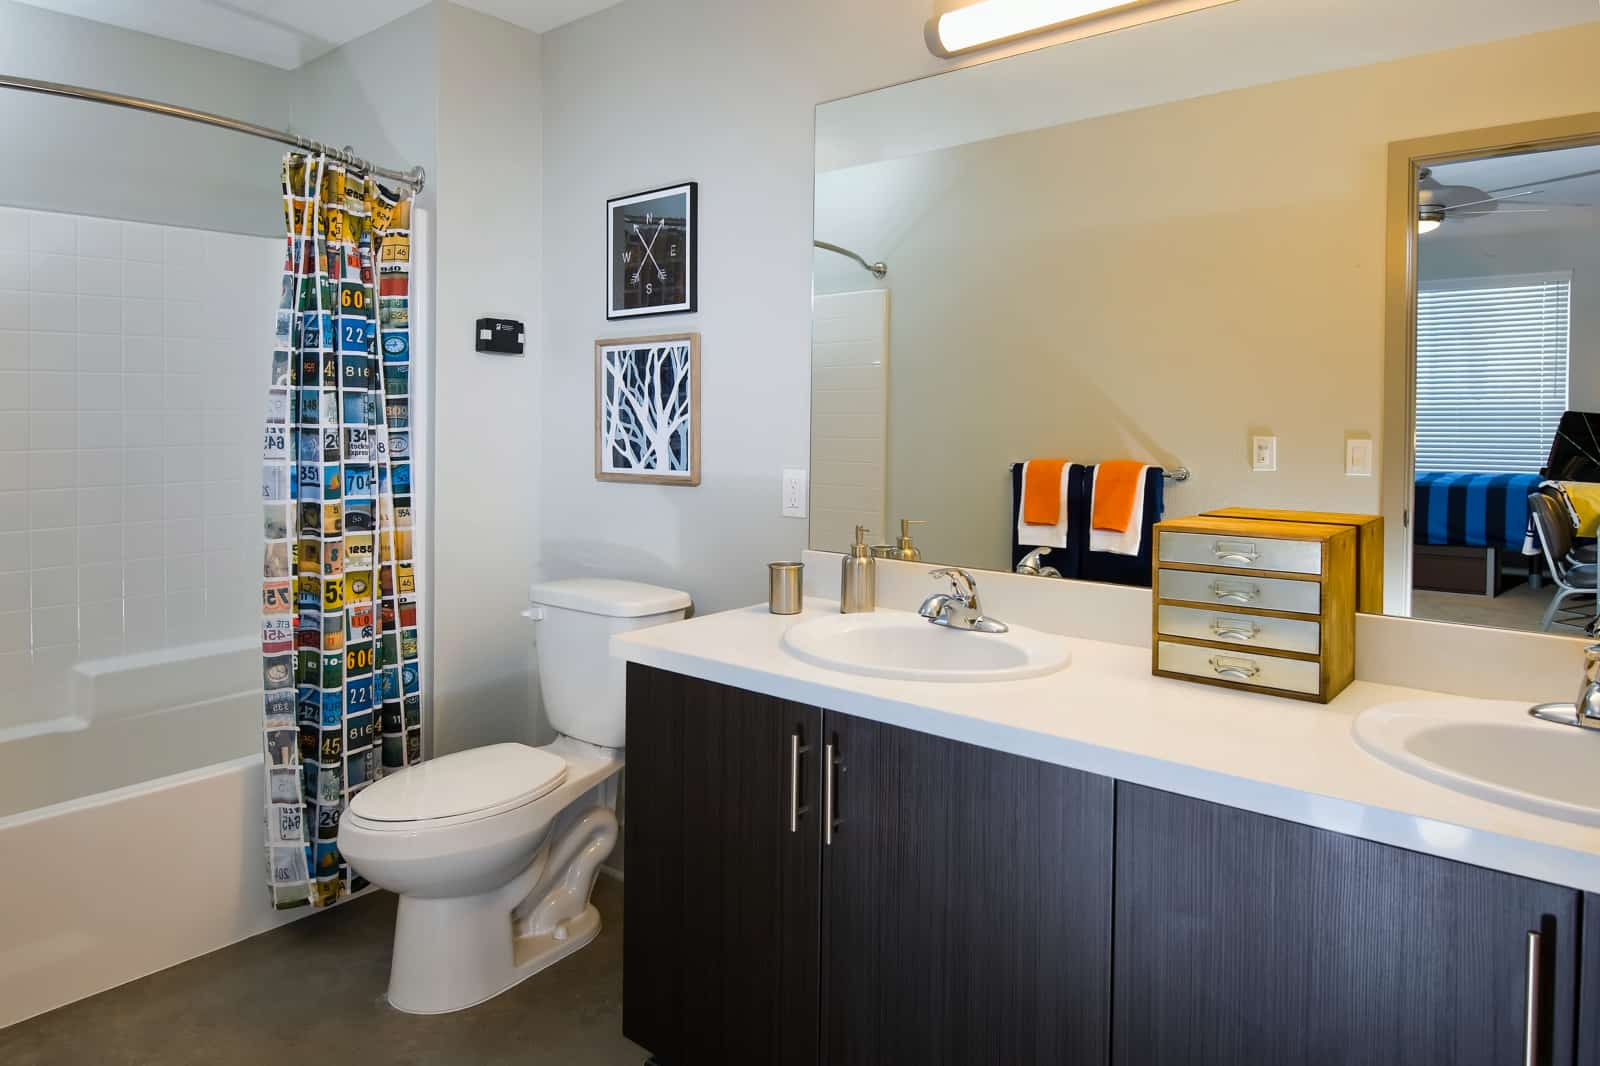 Interior of bathroom with shower over tub, toilet and double vanity.